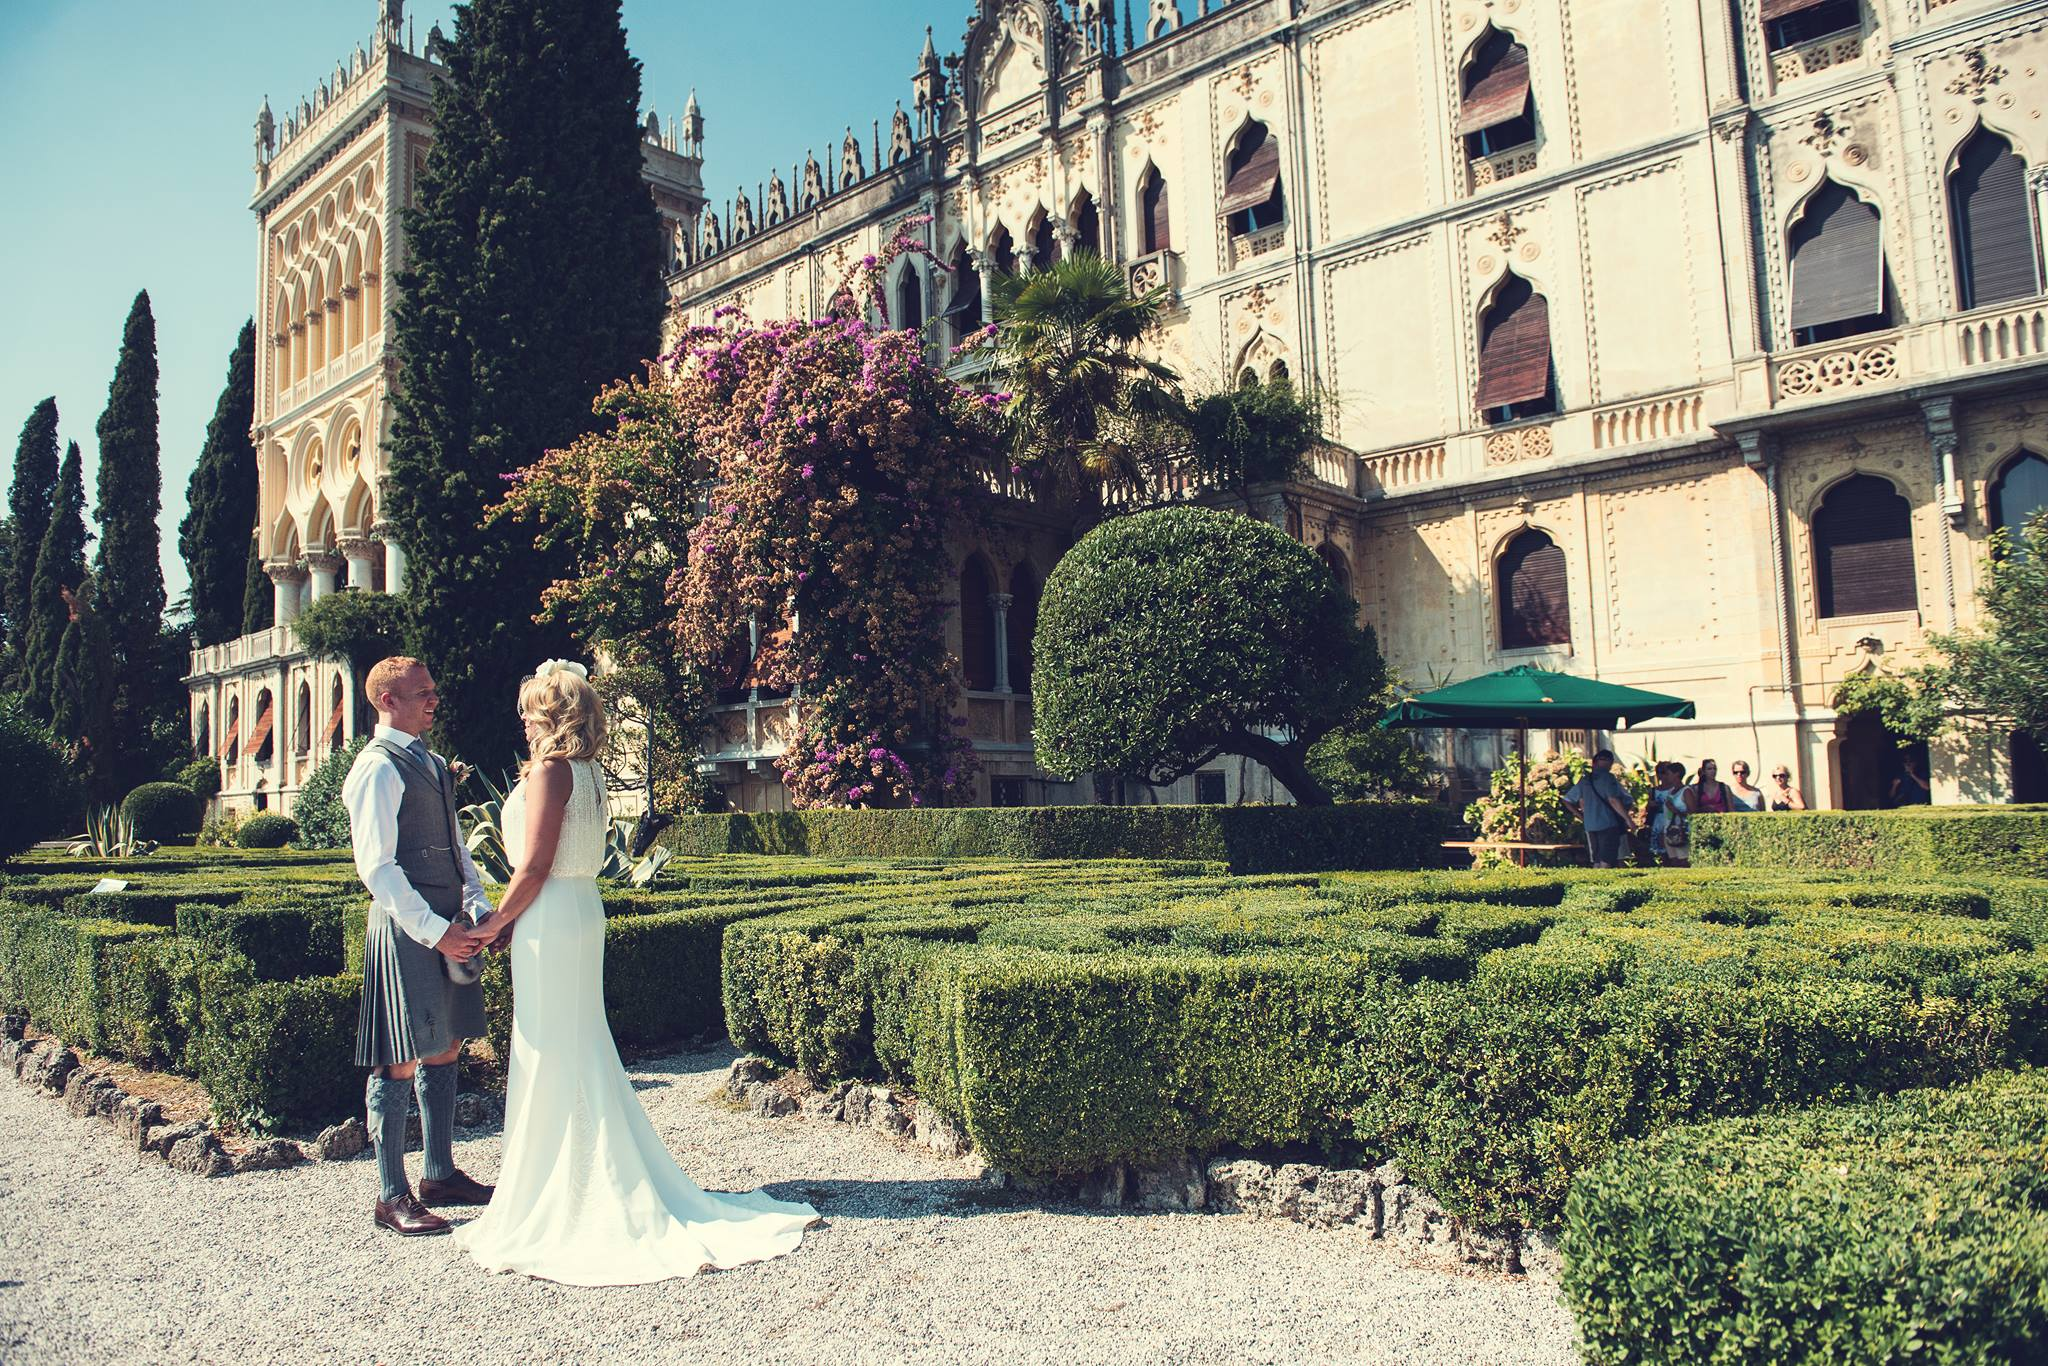 7-wedding-at-lake-garda-wedding-isola-del-garda-cavazza-matrimonio-lago-di-garda